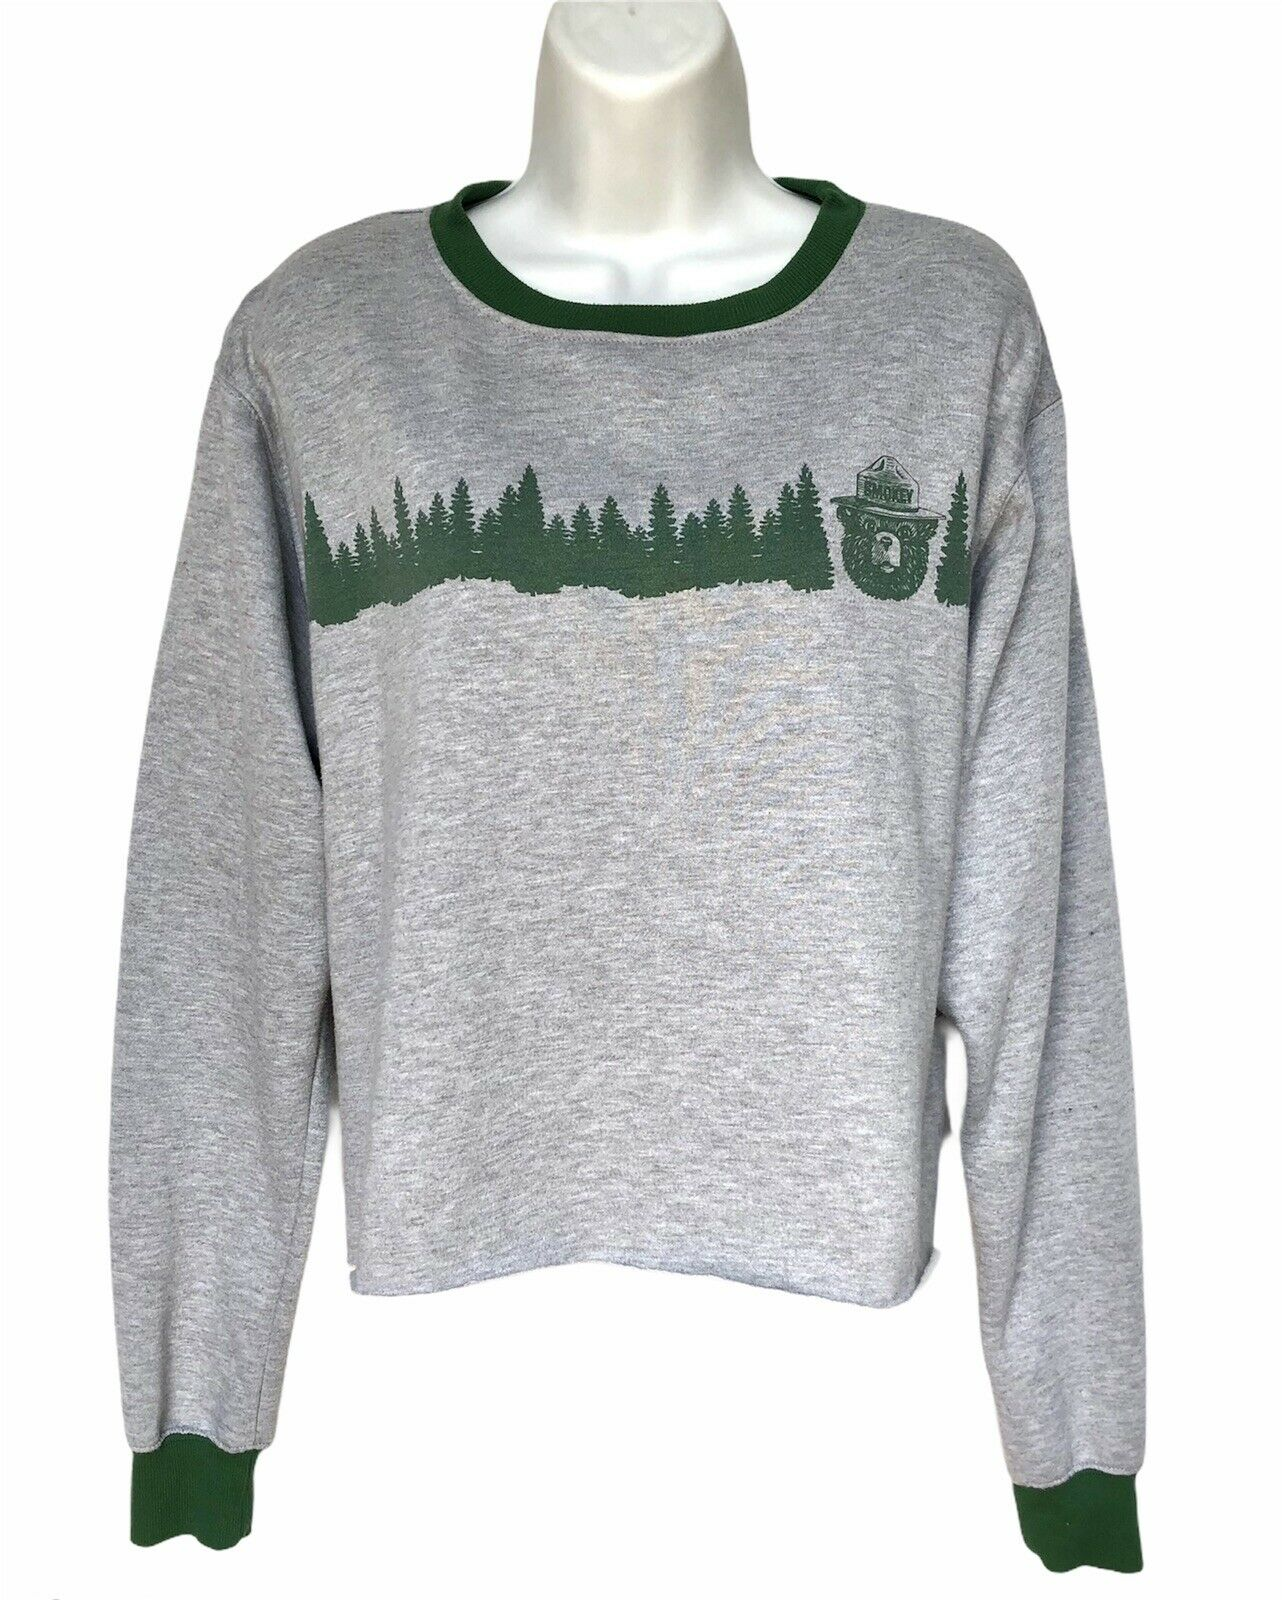 Smokey The Bear Forest Green Cropped Pullover Sweatshirt Size 2X Jrs Womens